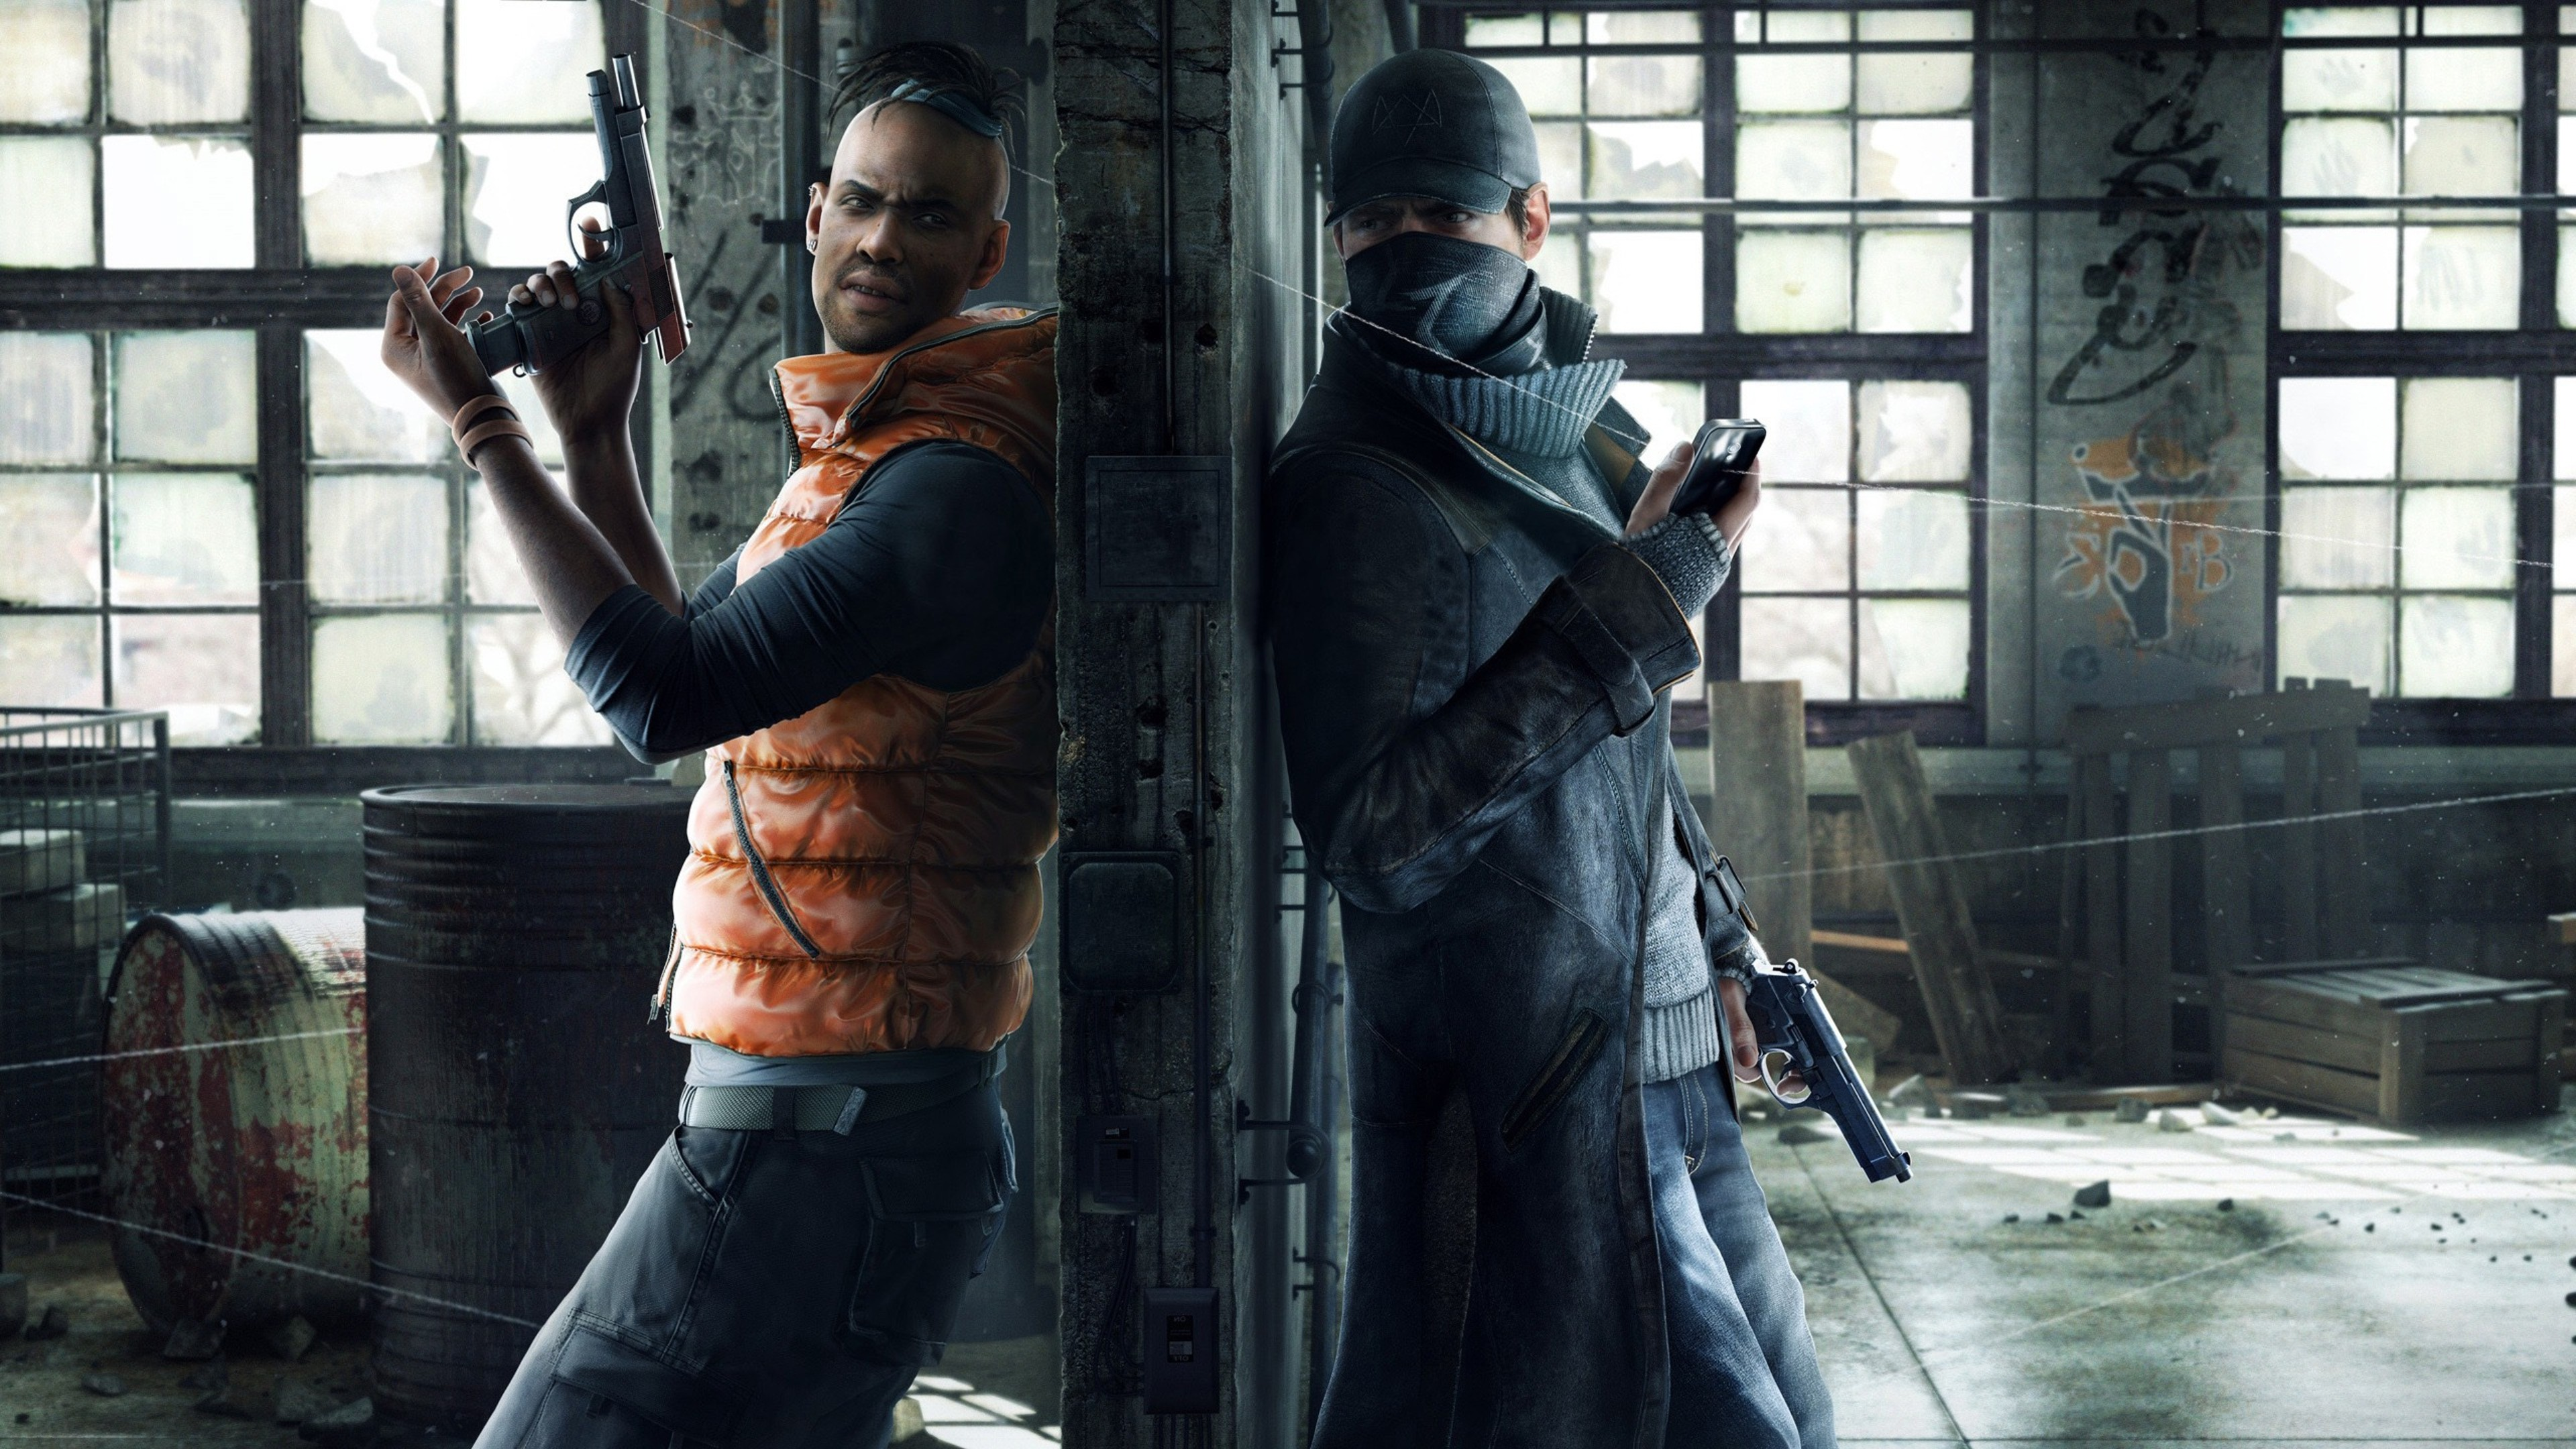 watch dogs game hd hd games 4k wallpapers images